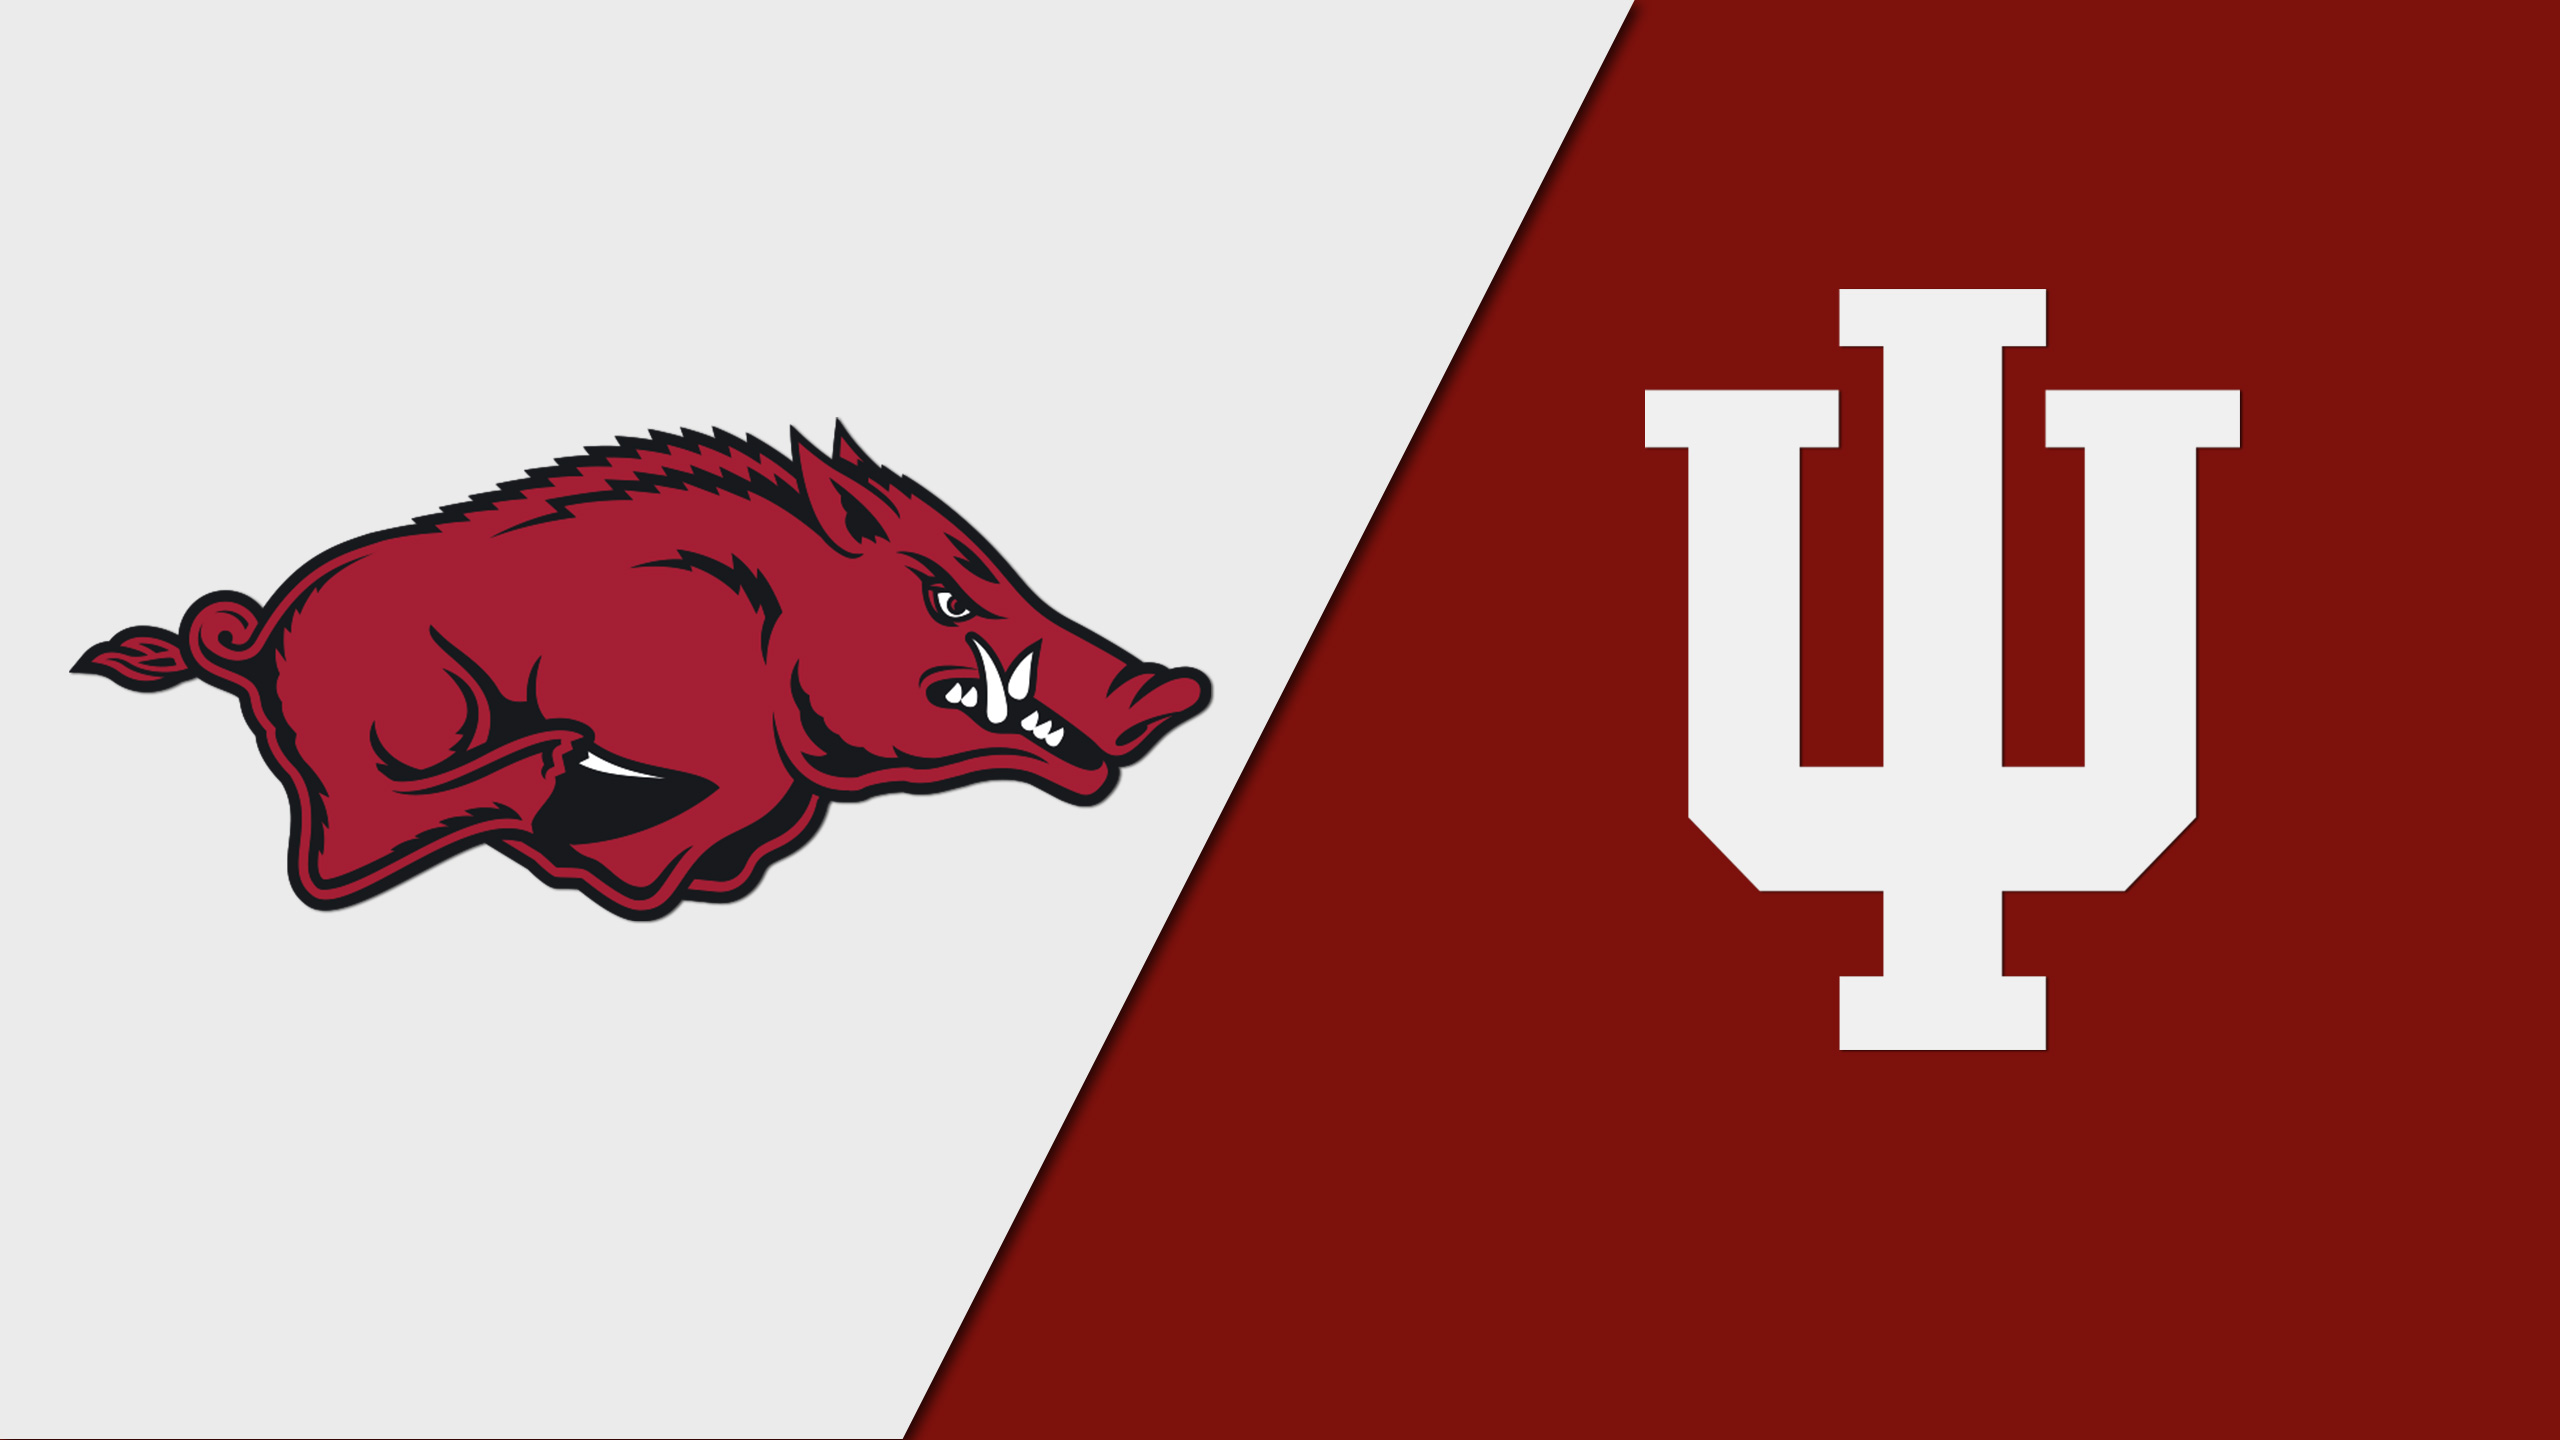 #5 Arkansas vs. #1 Indiana (Second Round) (NIT)